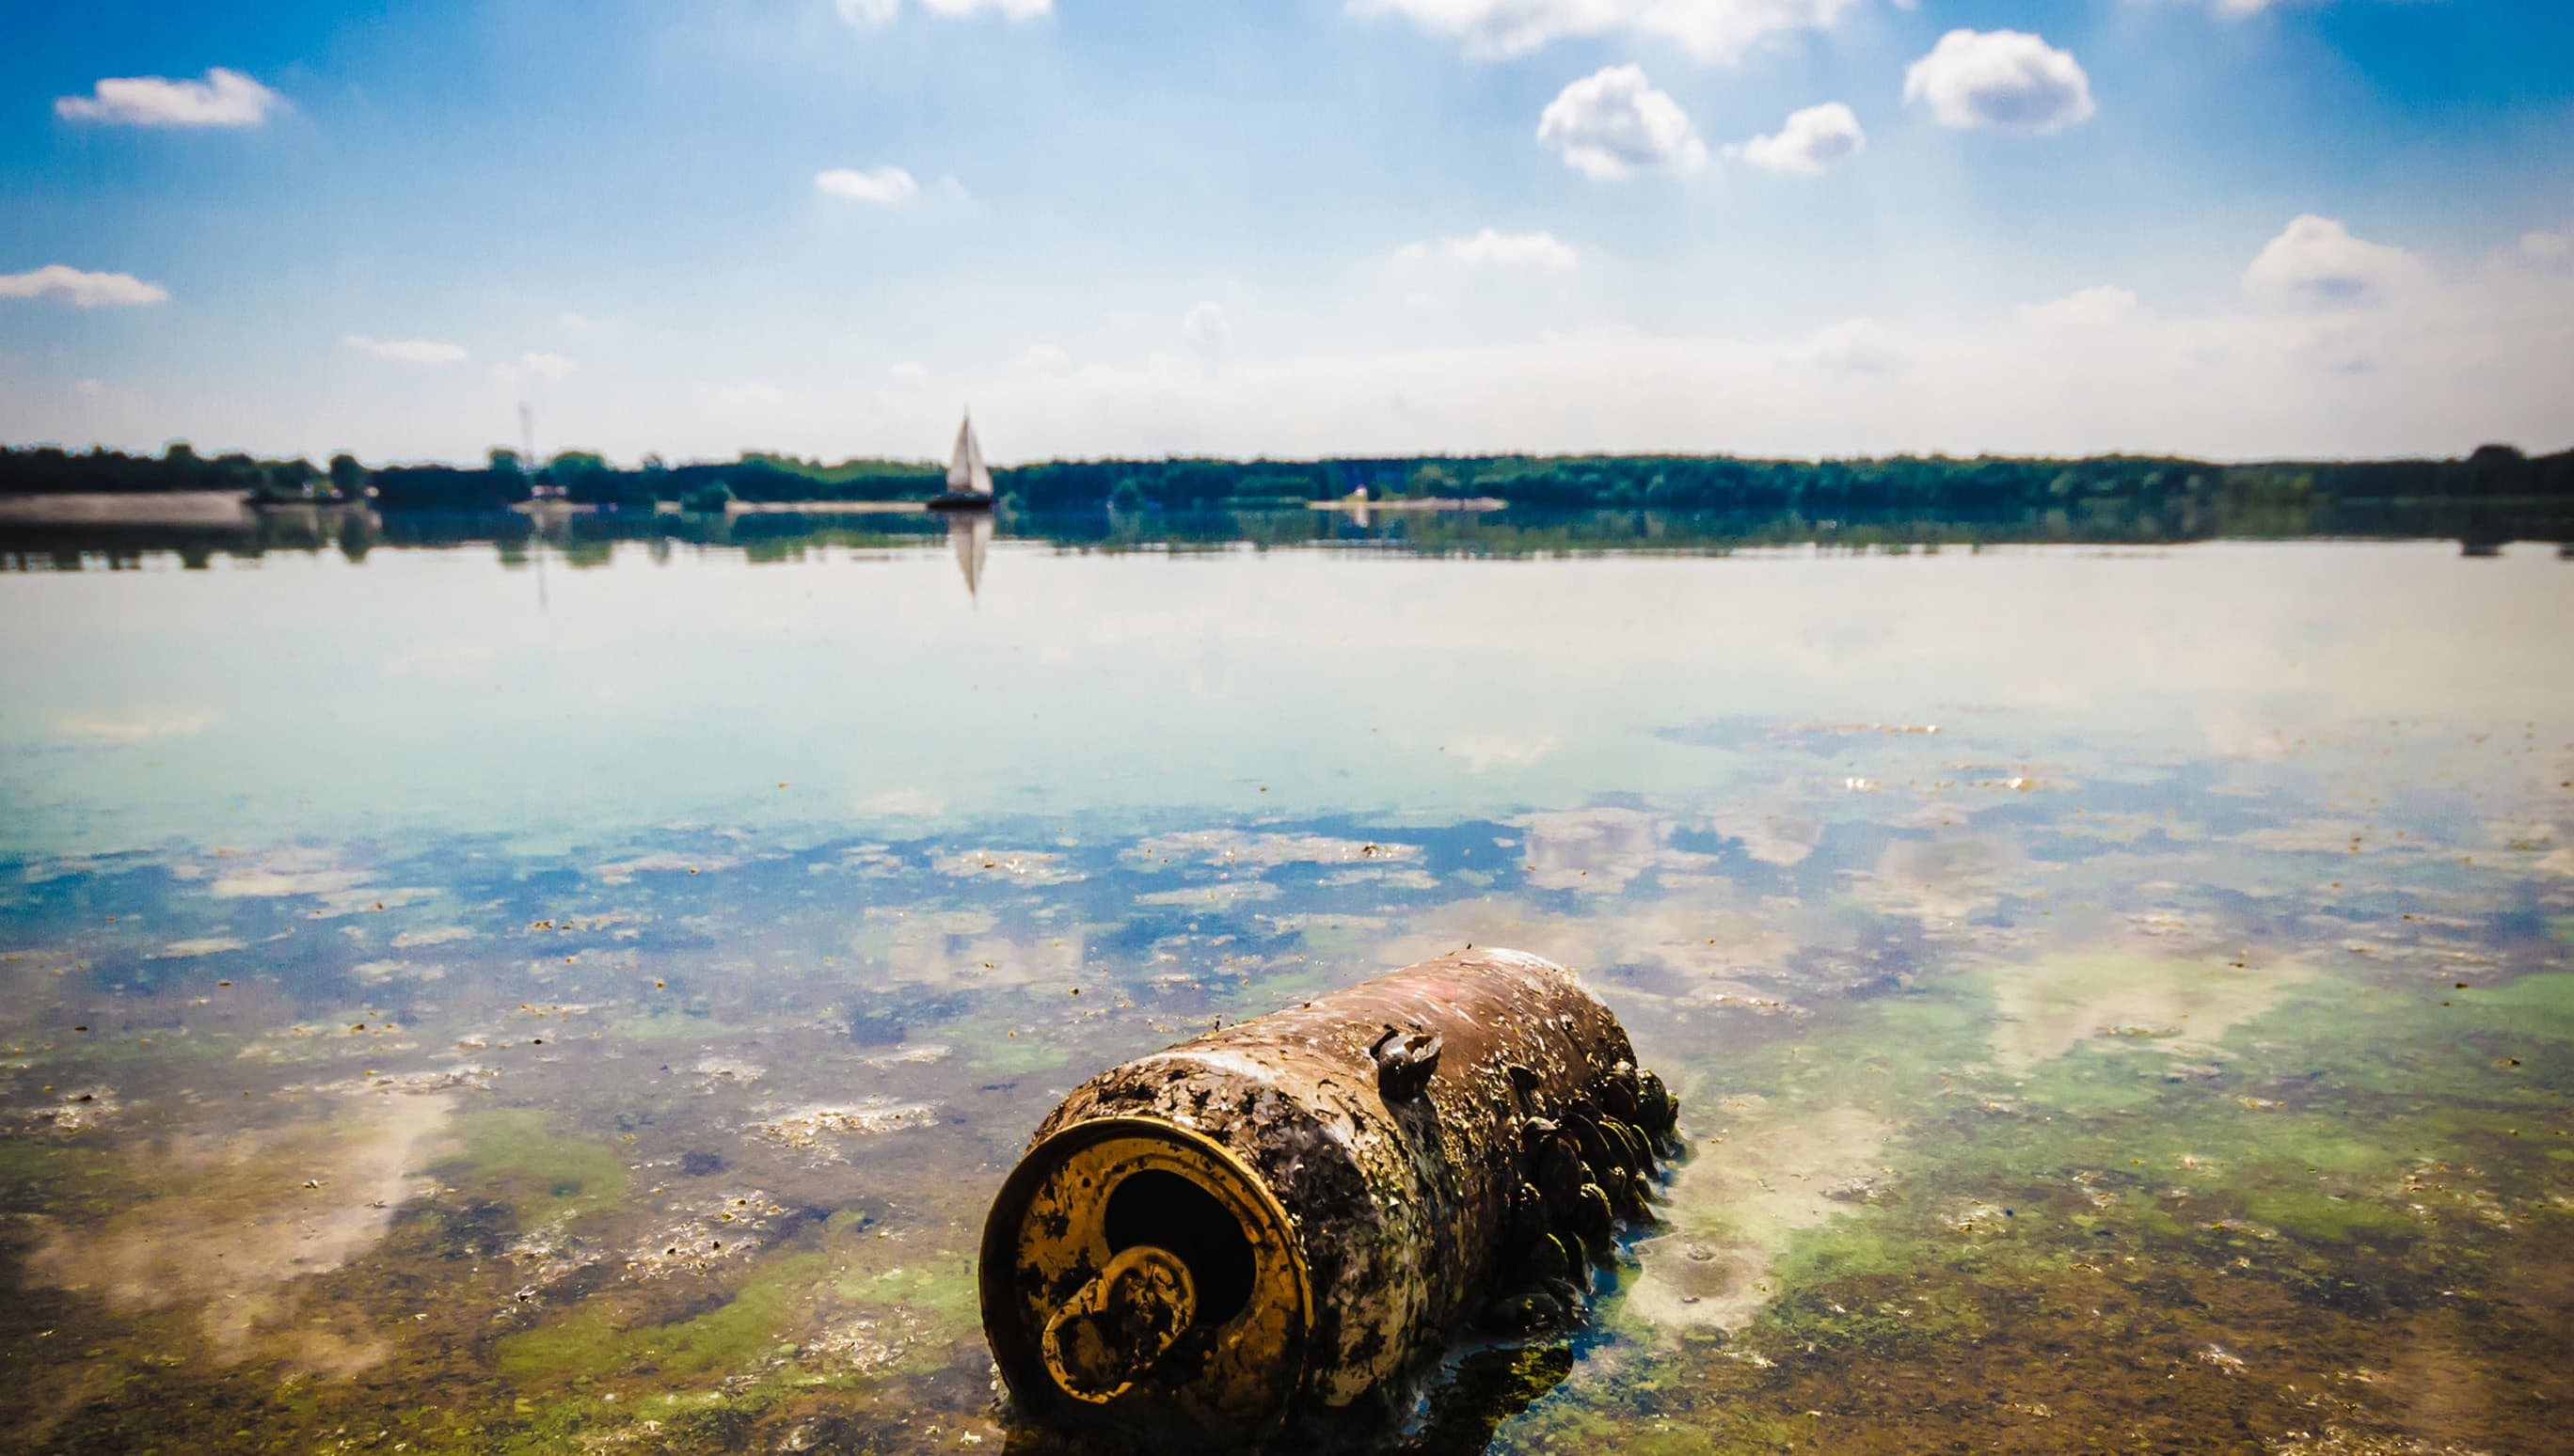 Microbiological Water Pollution